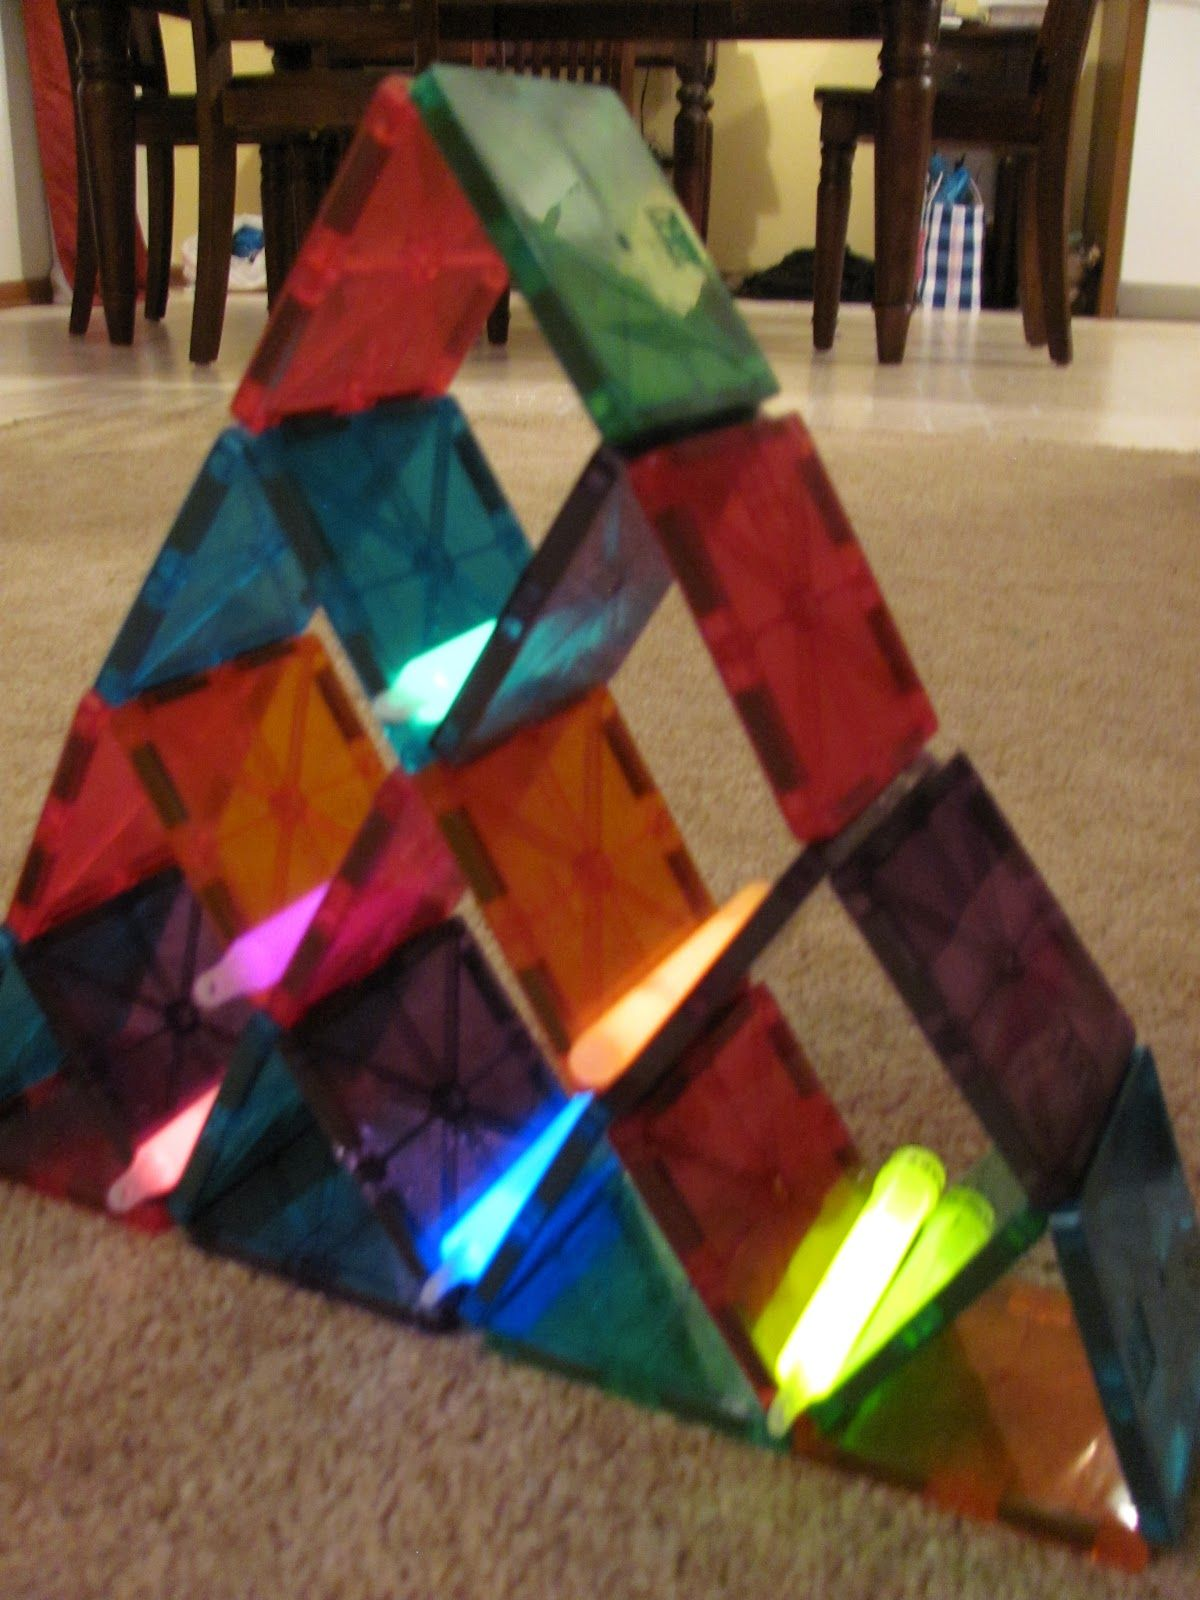 Magna-Tiles and Glow Sticks | mag by | Pinterest | Glow sticks ...